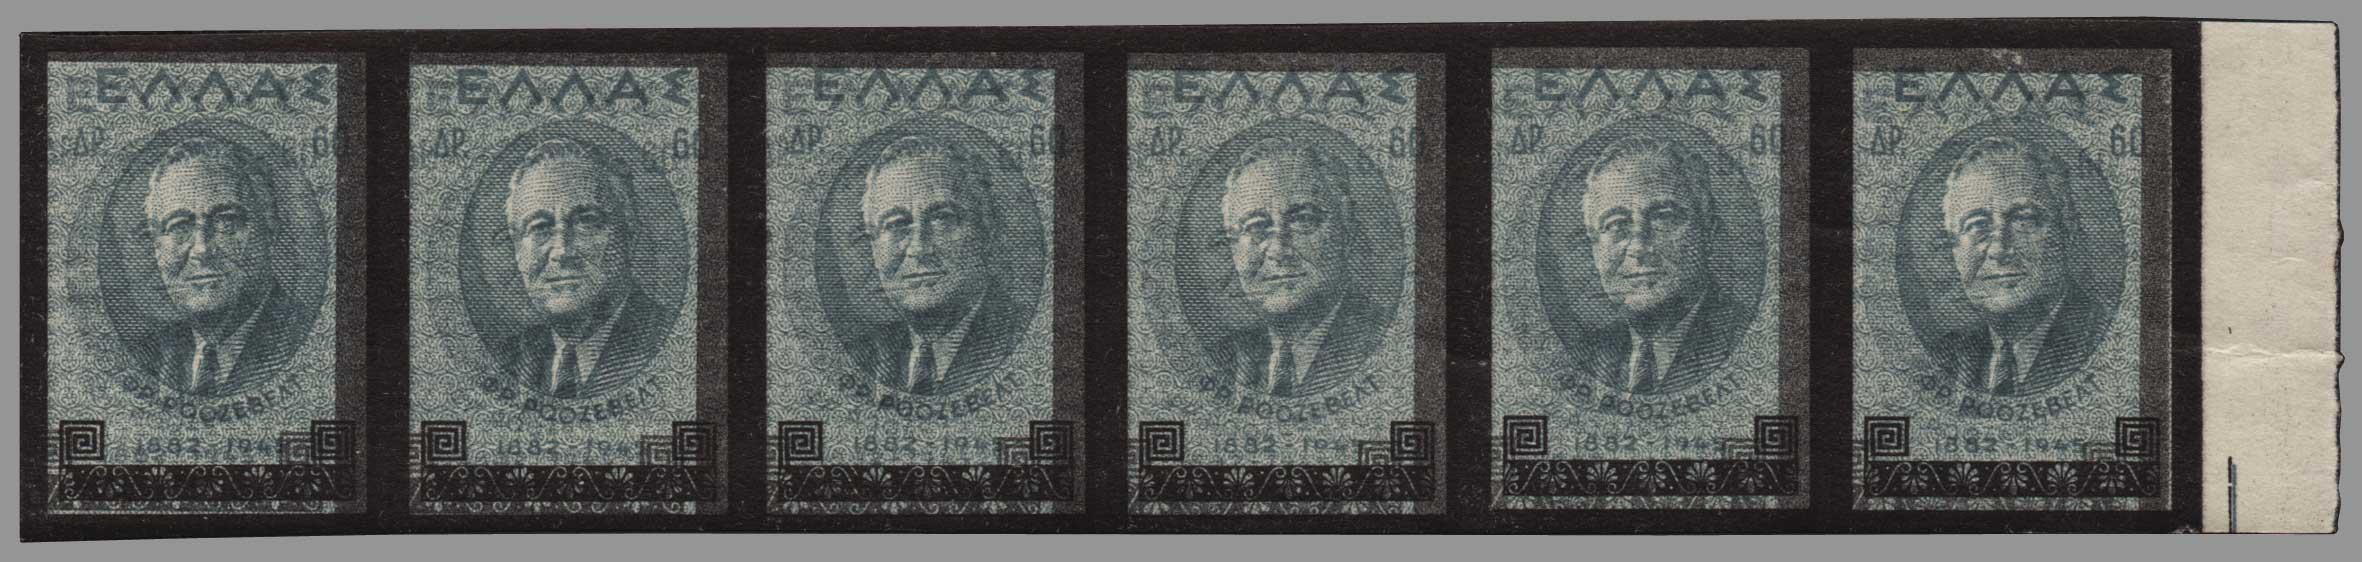 Lot 710 - - 1945-2013 1945-2013 -  Athens Auctions Public Auction 70 General Stamp Sale